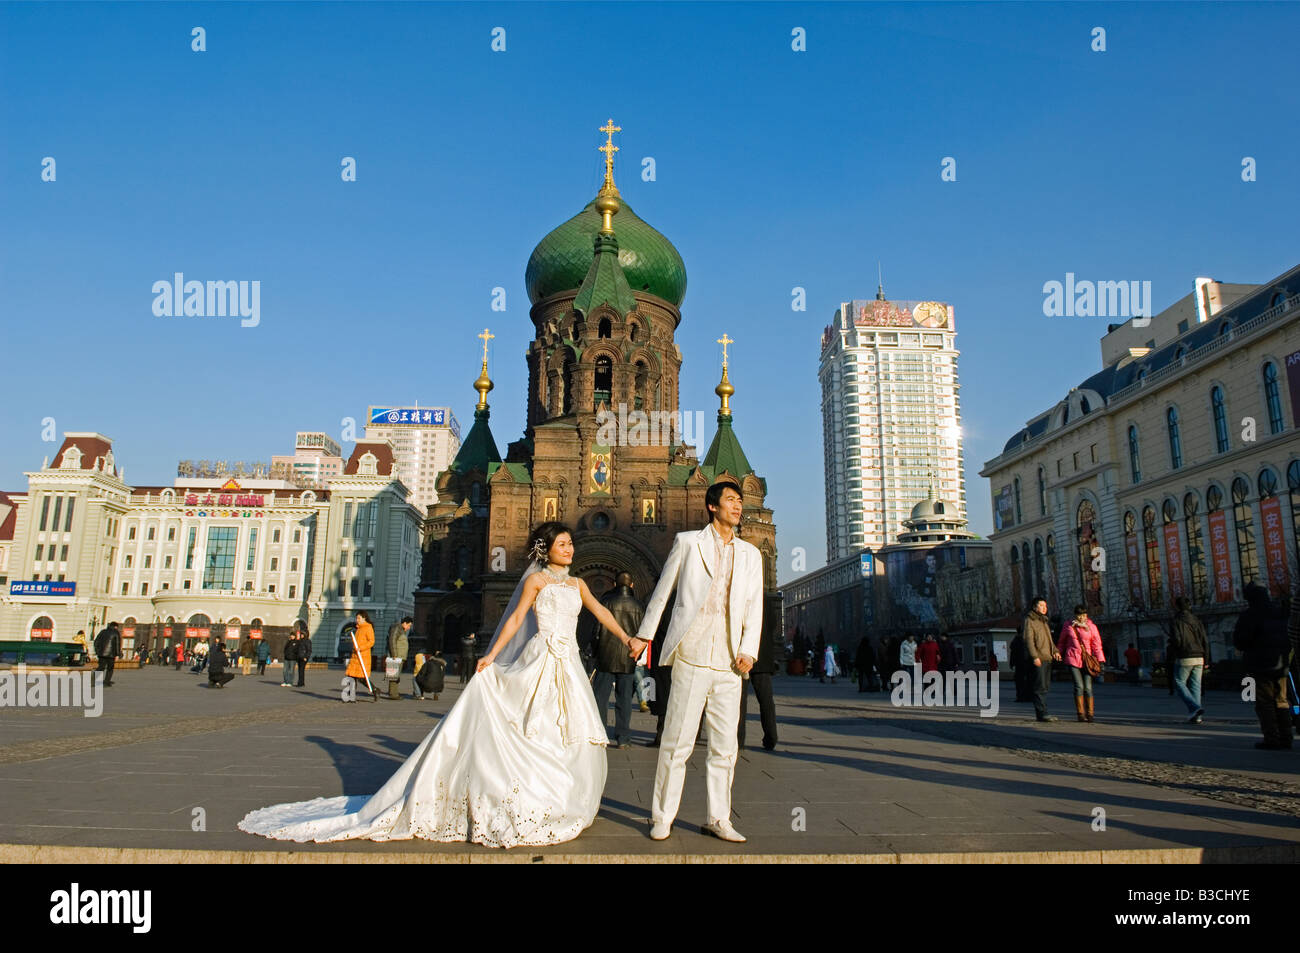 China, Northeast China, Heilongjiang Province, Harbin City. A wedding couple pose for photos in the middle of winter - Stock Image